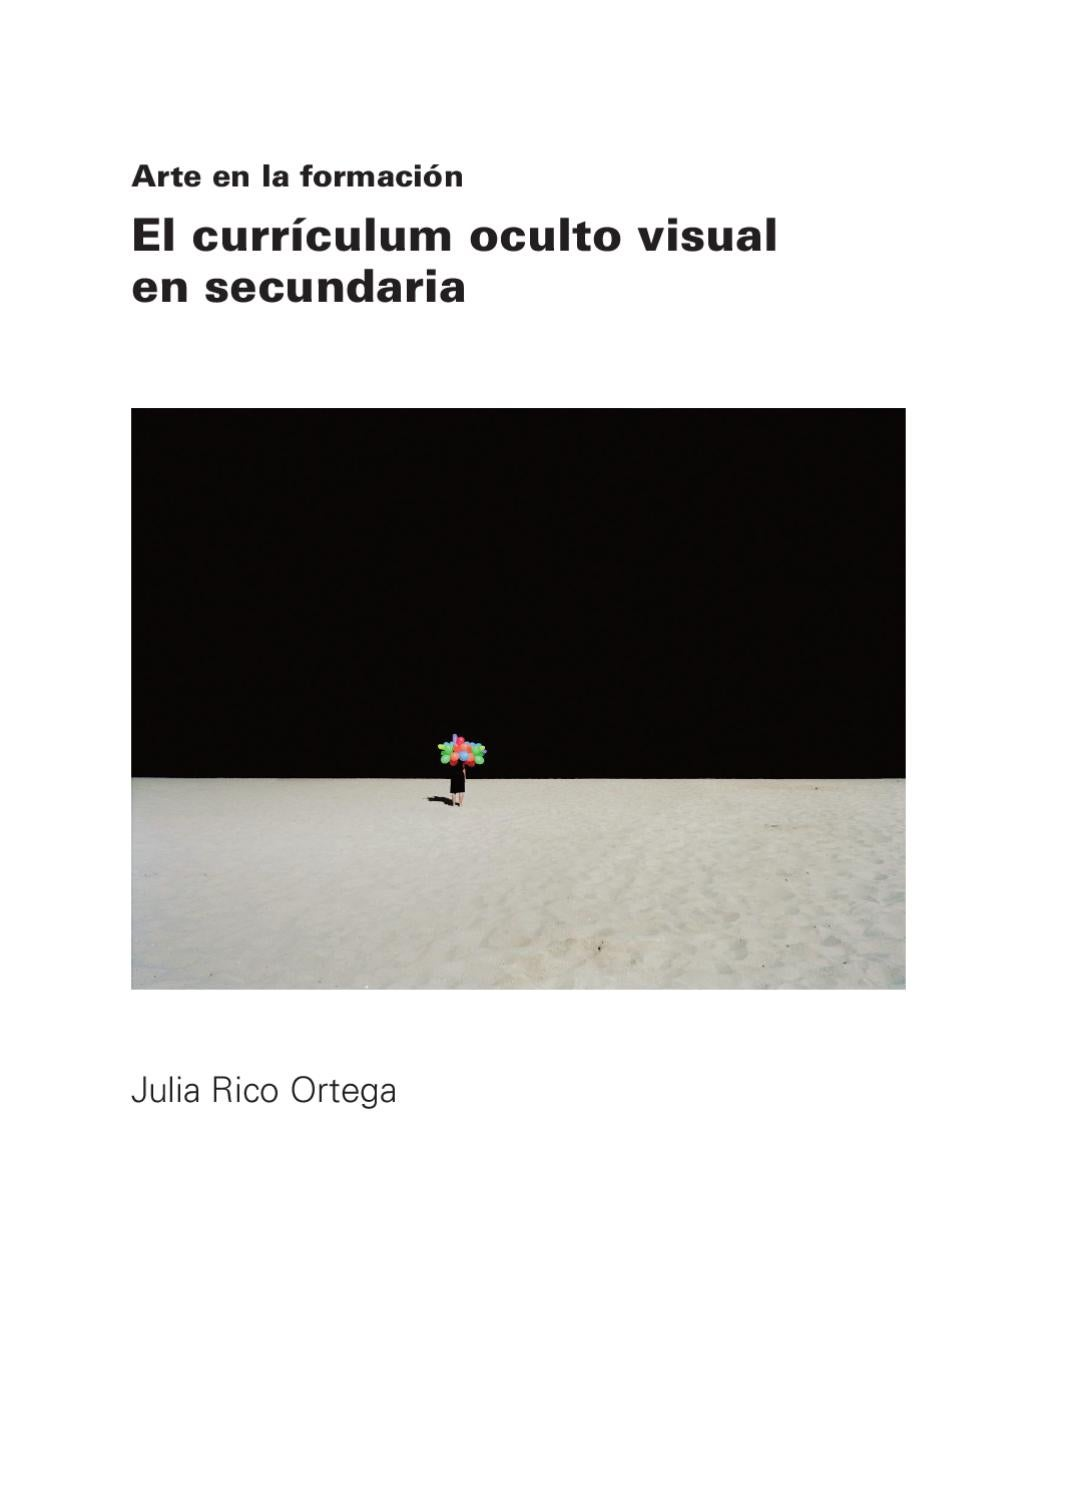 El curriculum oculto visual en secundaria by Julia Rico Ortega - issuu